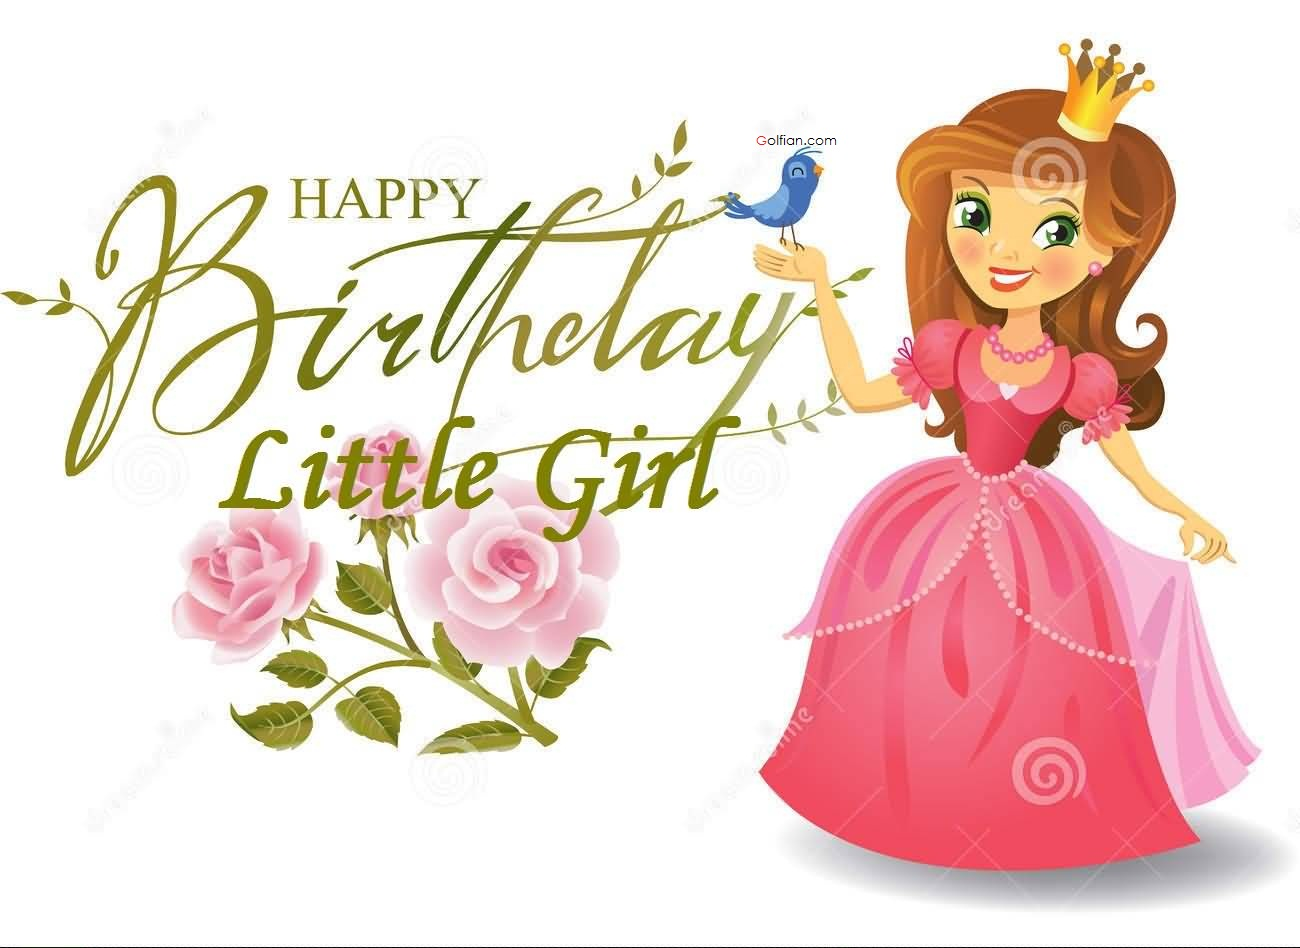 baby girl birthday card messages ; Amazing-E-Card-Birthday-Wishes-For-Little-Girl